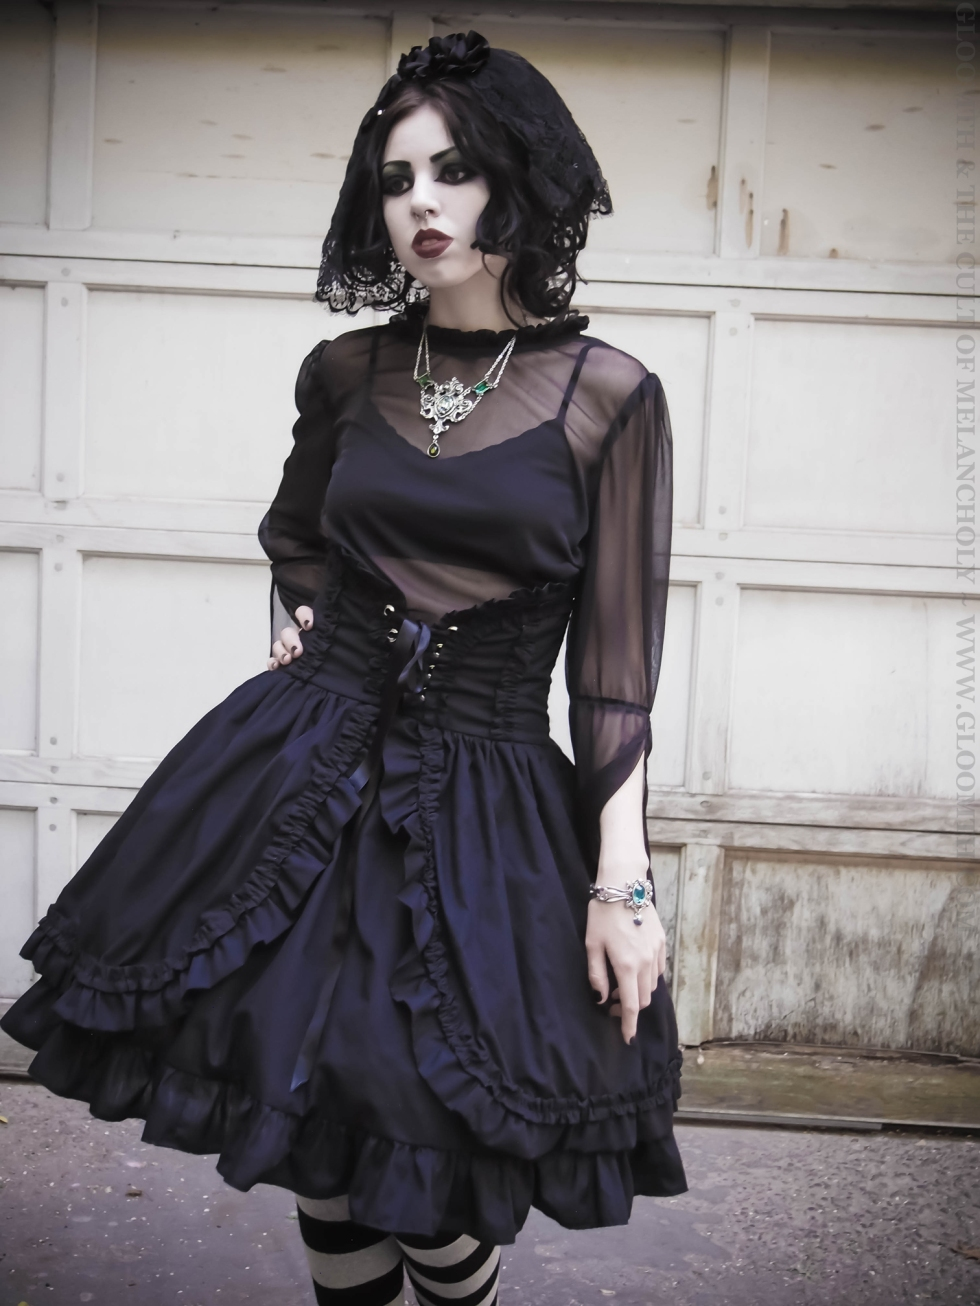 gothic outfit from gloomth